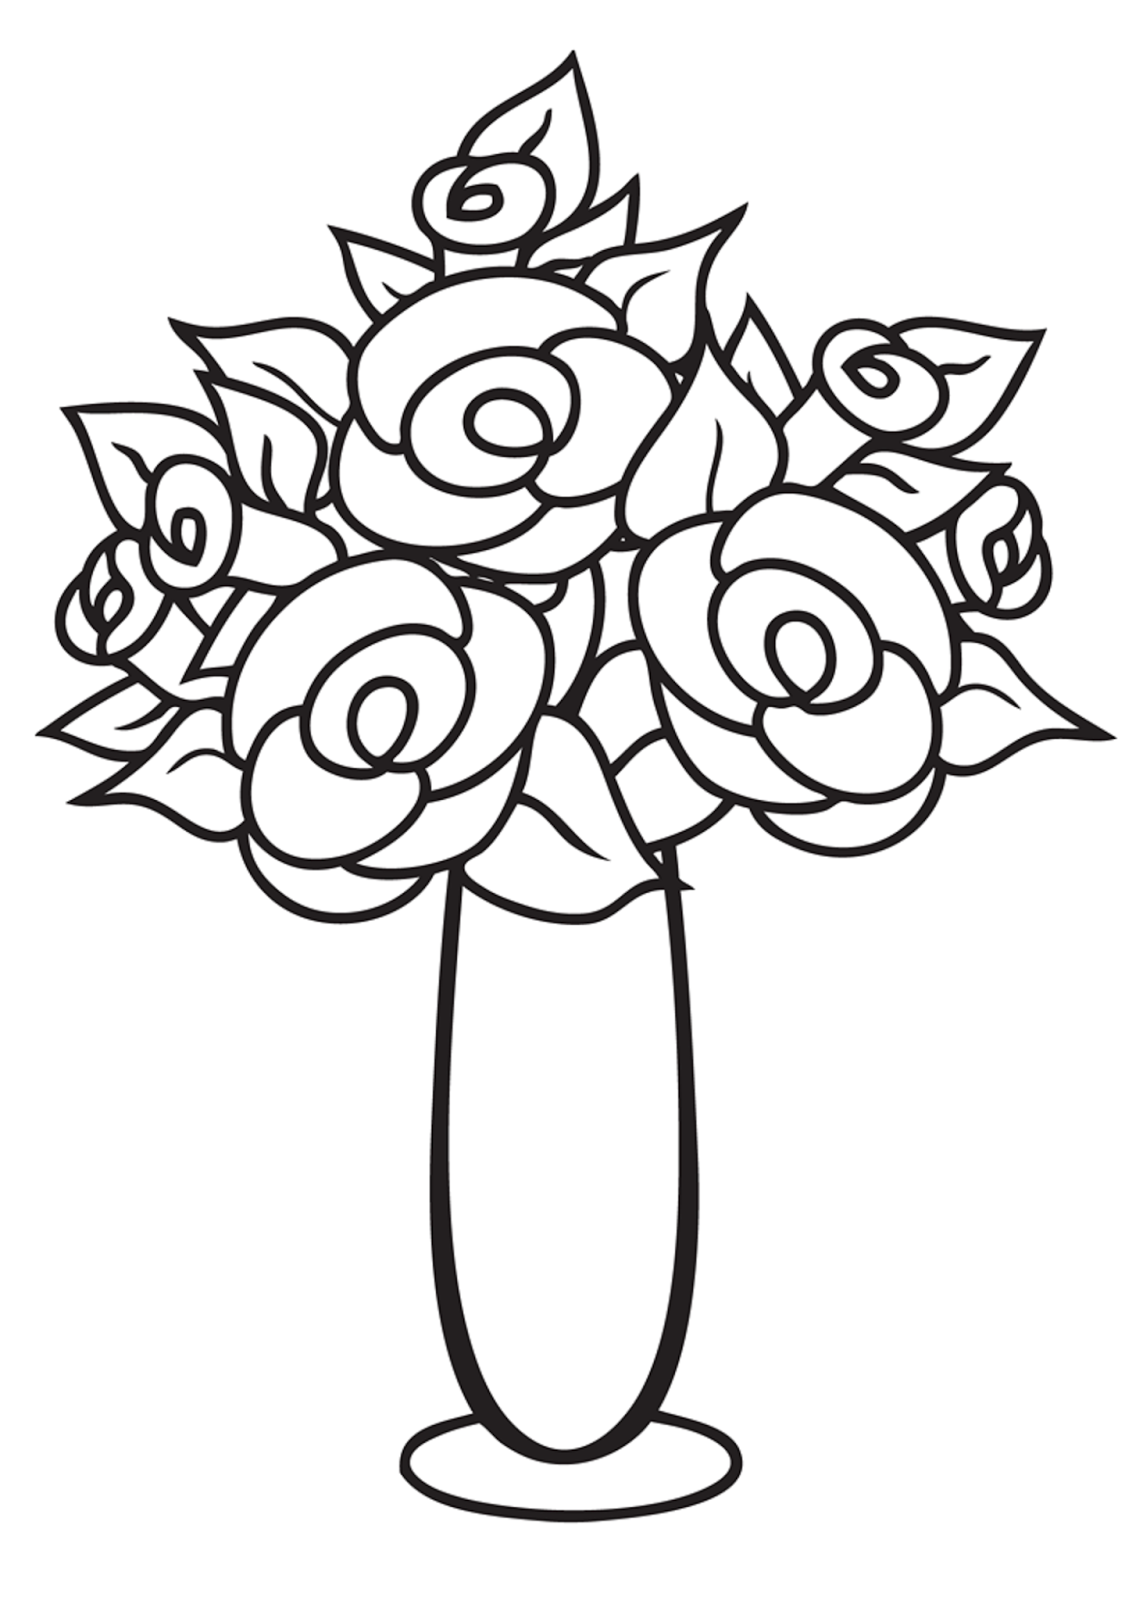 Draw A Vase Of Roses Easy Google Search Floral Drawing Flower Vase Drawing Flower Drawing